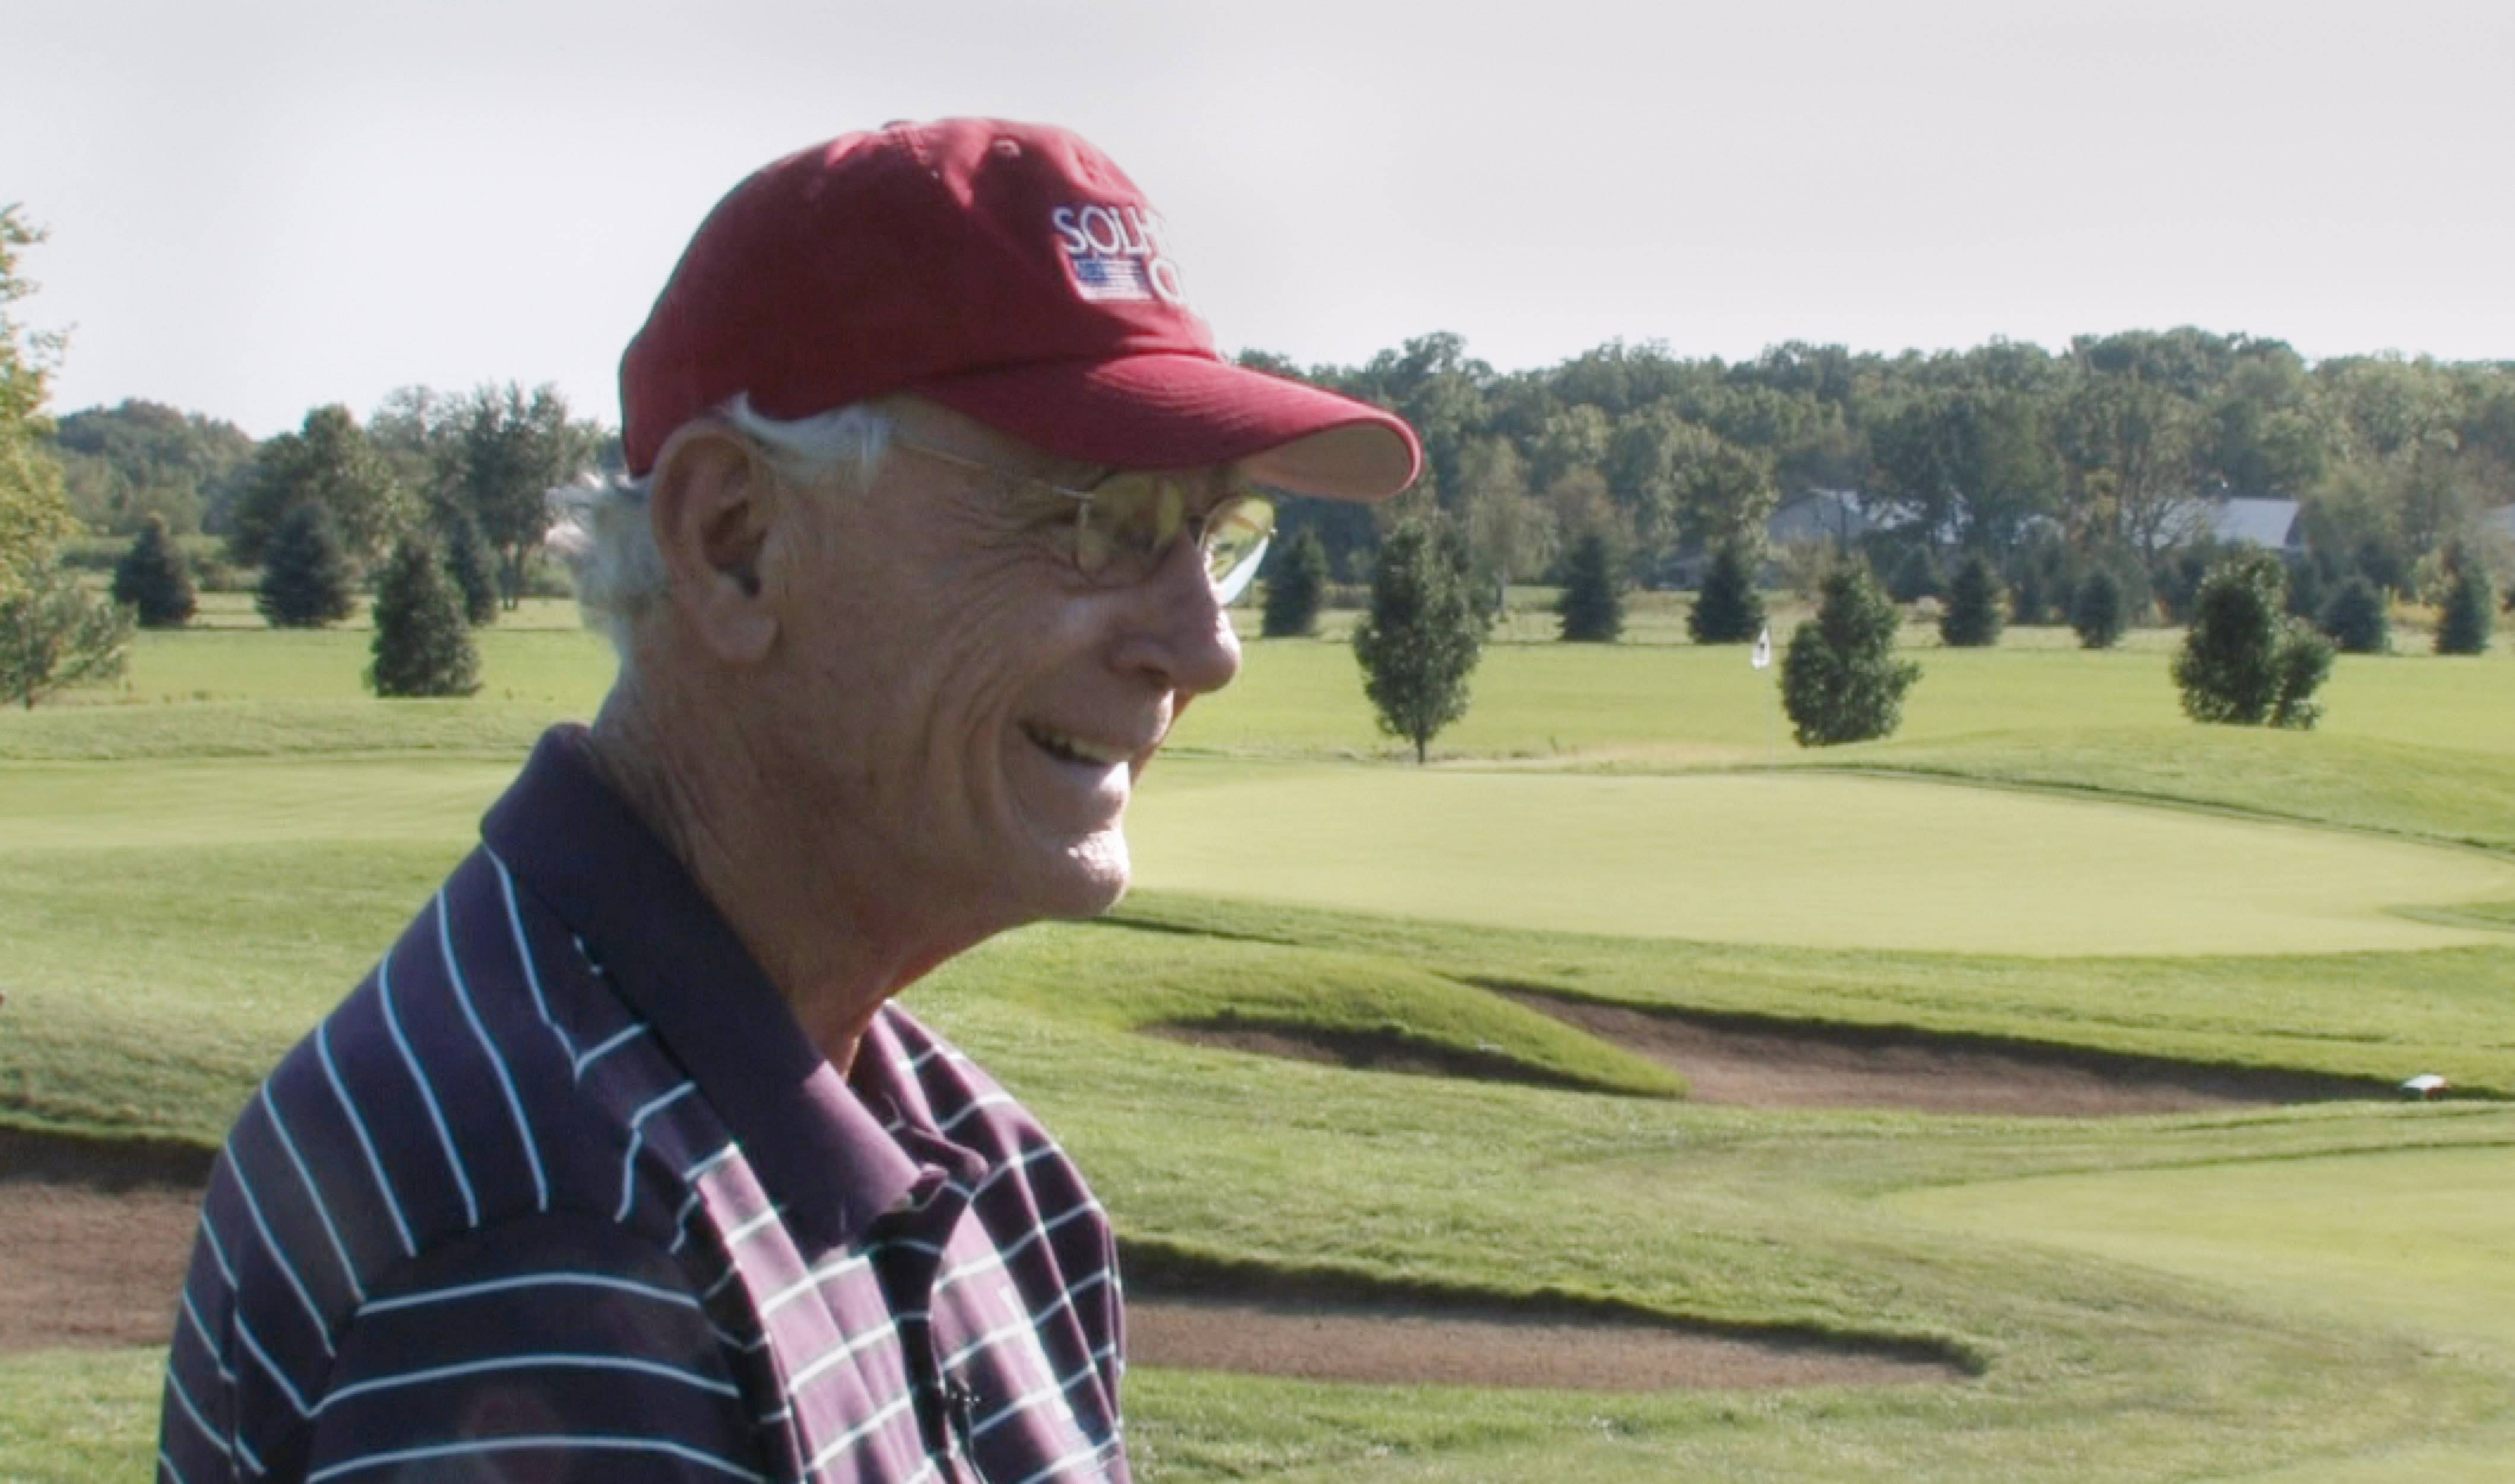 Before he brings the International Crown championship to his Rich Harvest Farms course in 2016, owner Jerry Rich will host several other big events at the Sugar Grove private club, starting with the NCAA men's regional this week.